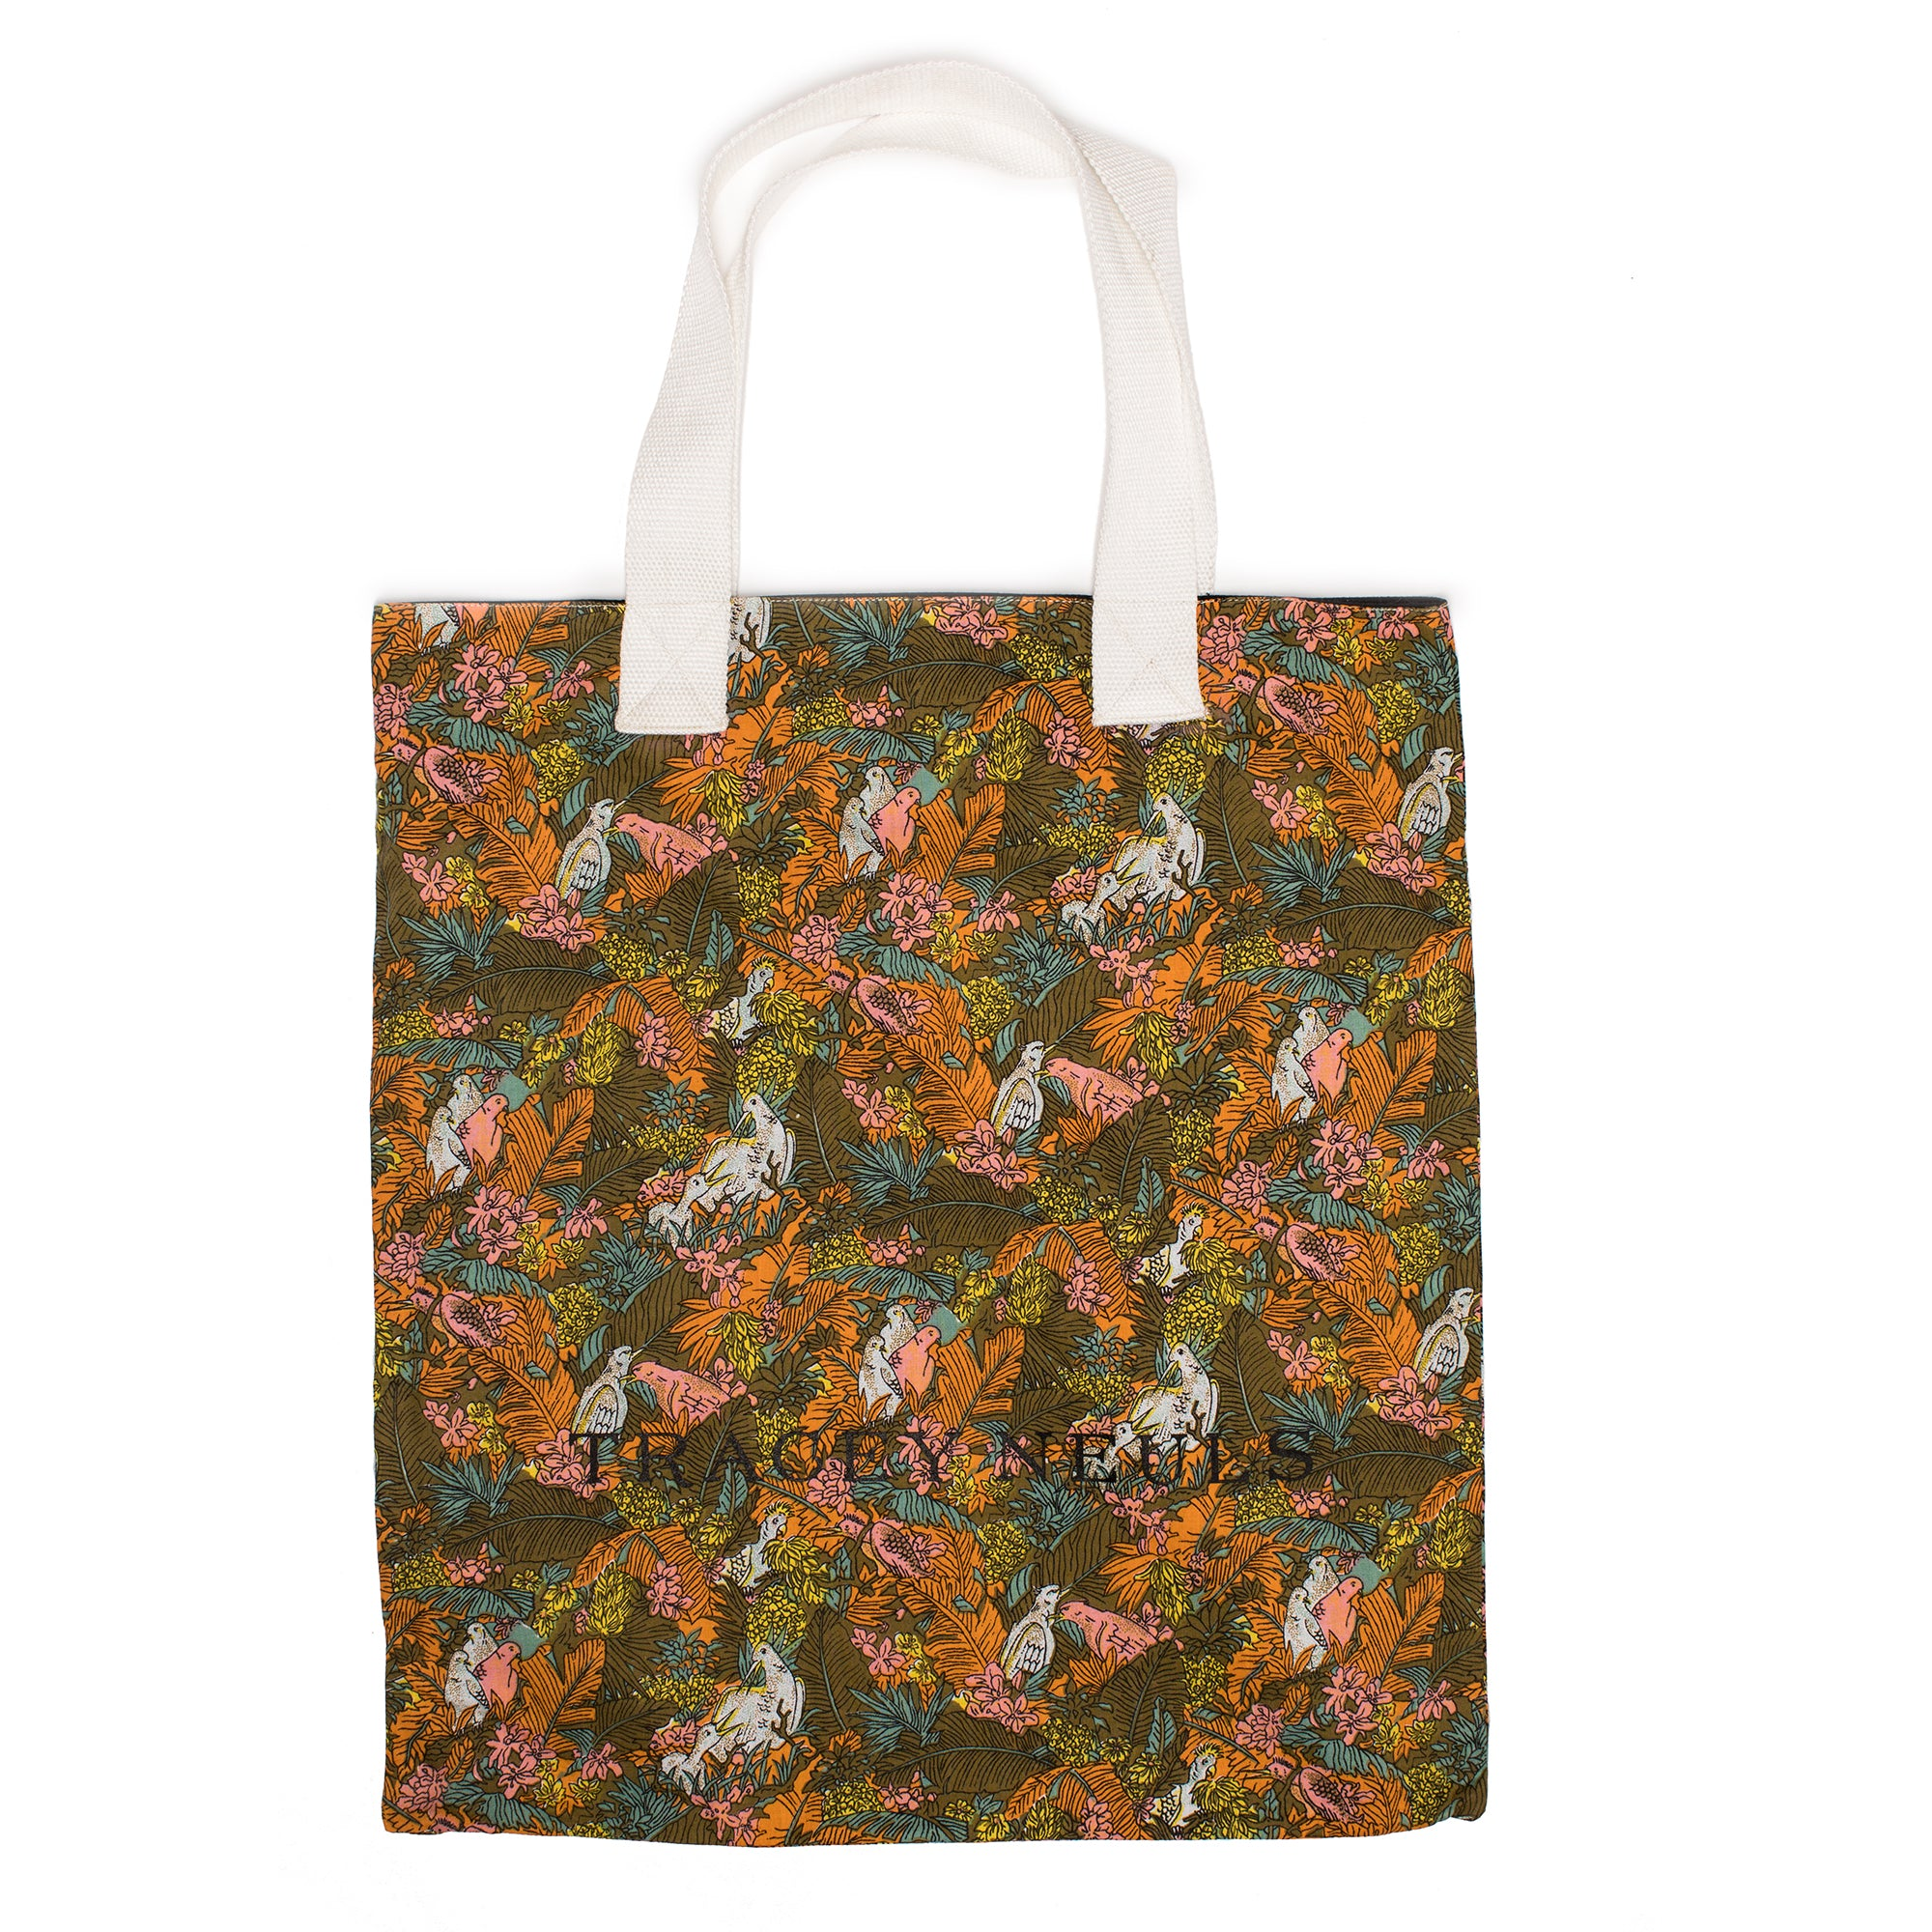 TOTE BAG reversible vintage print